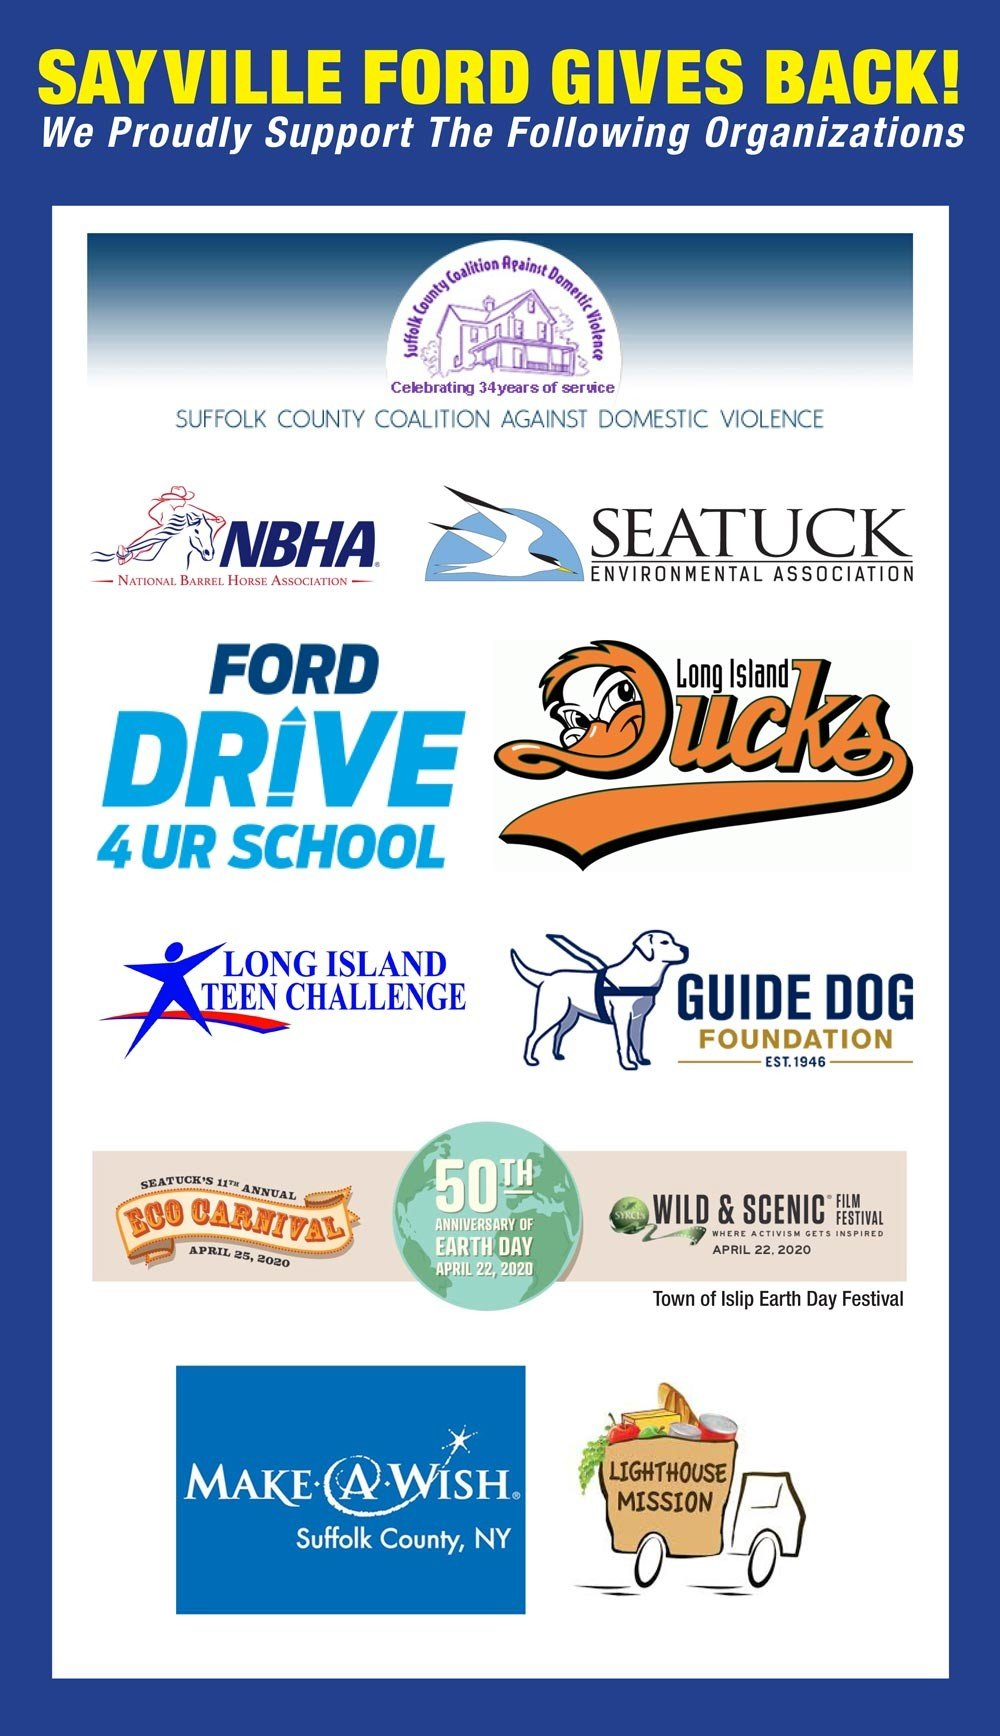 sayville ford gives back